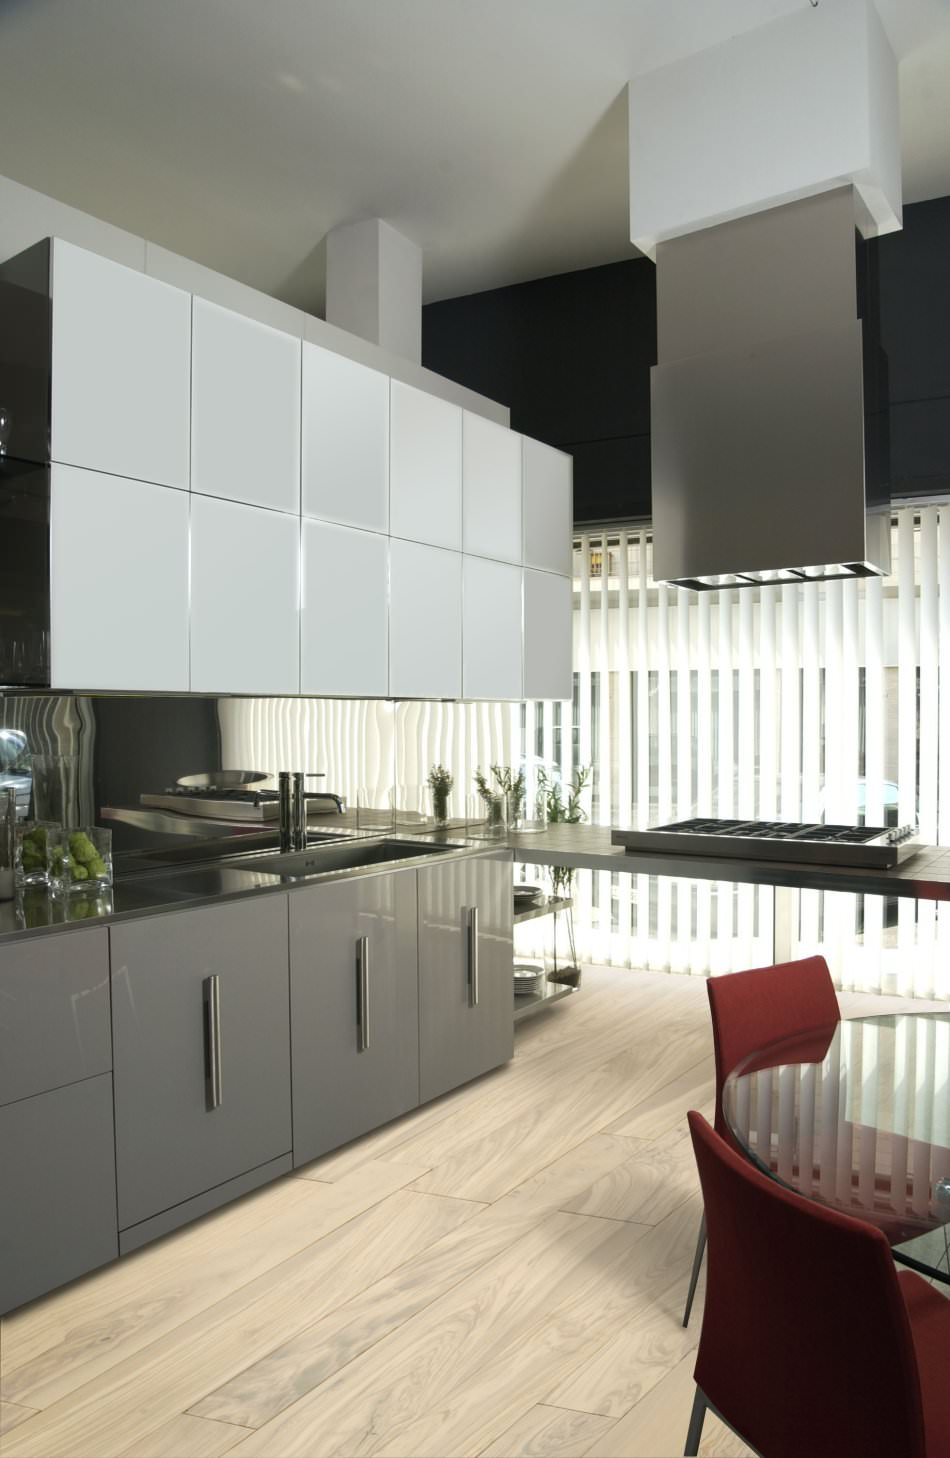 RAL 7037 Dusty Grey High Gloss Kitchen Cabinets